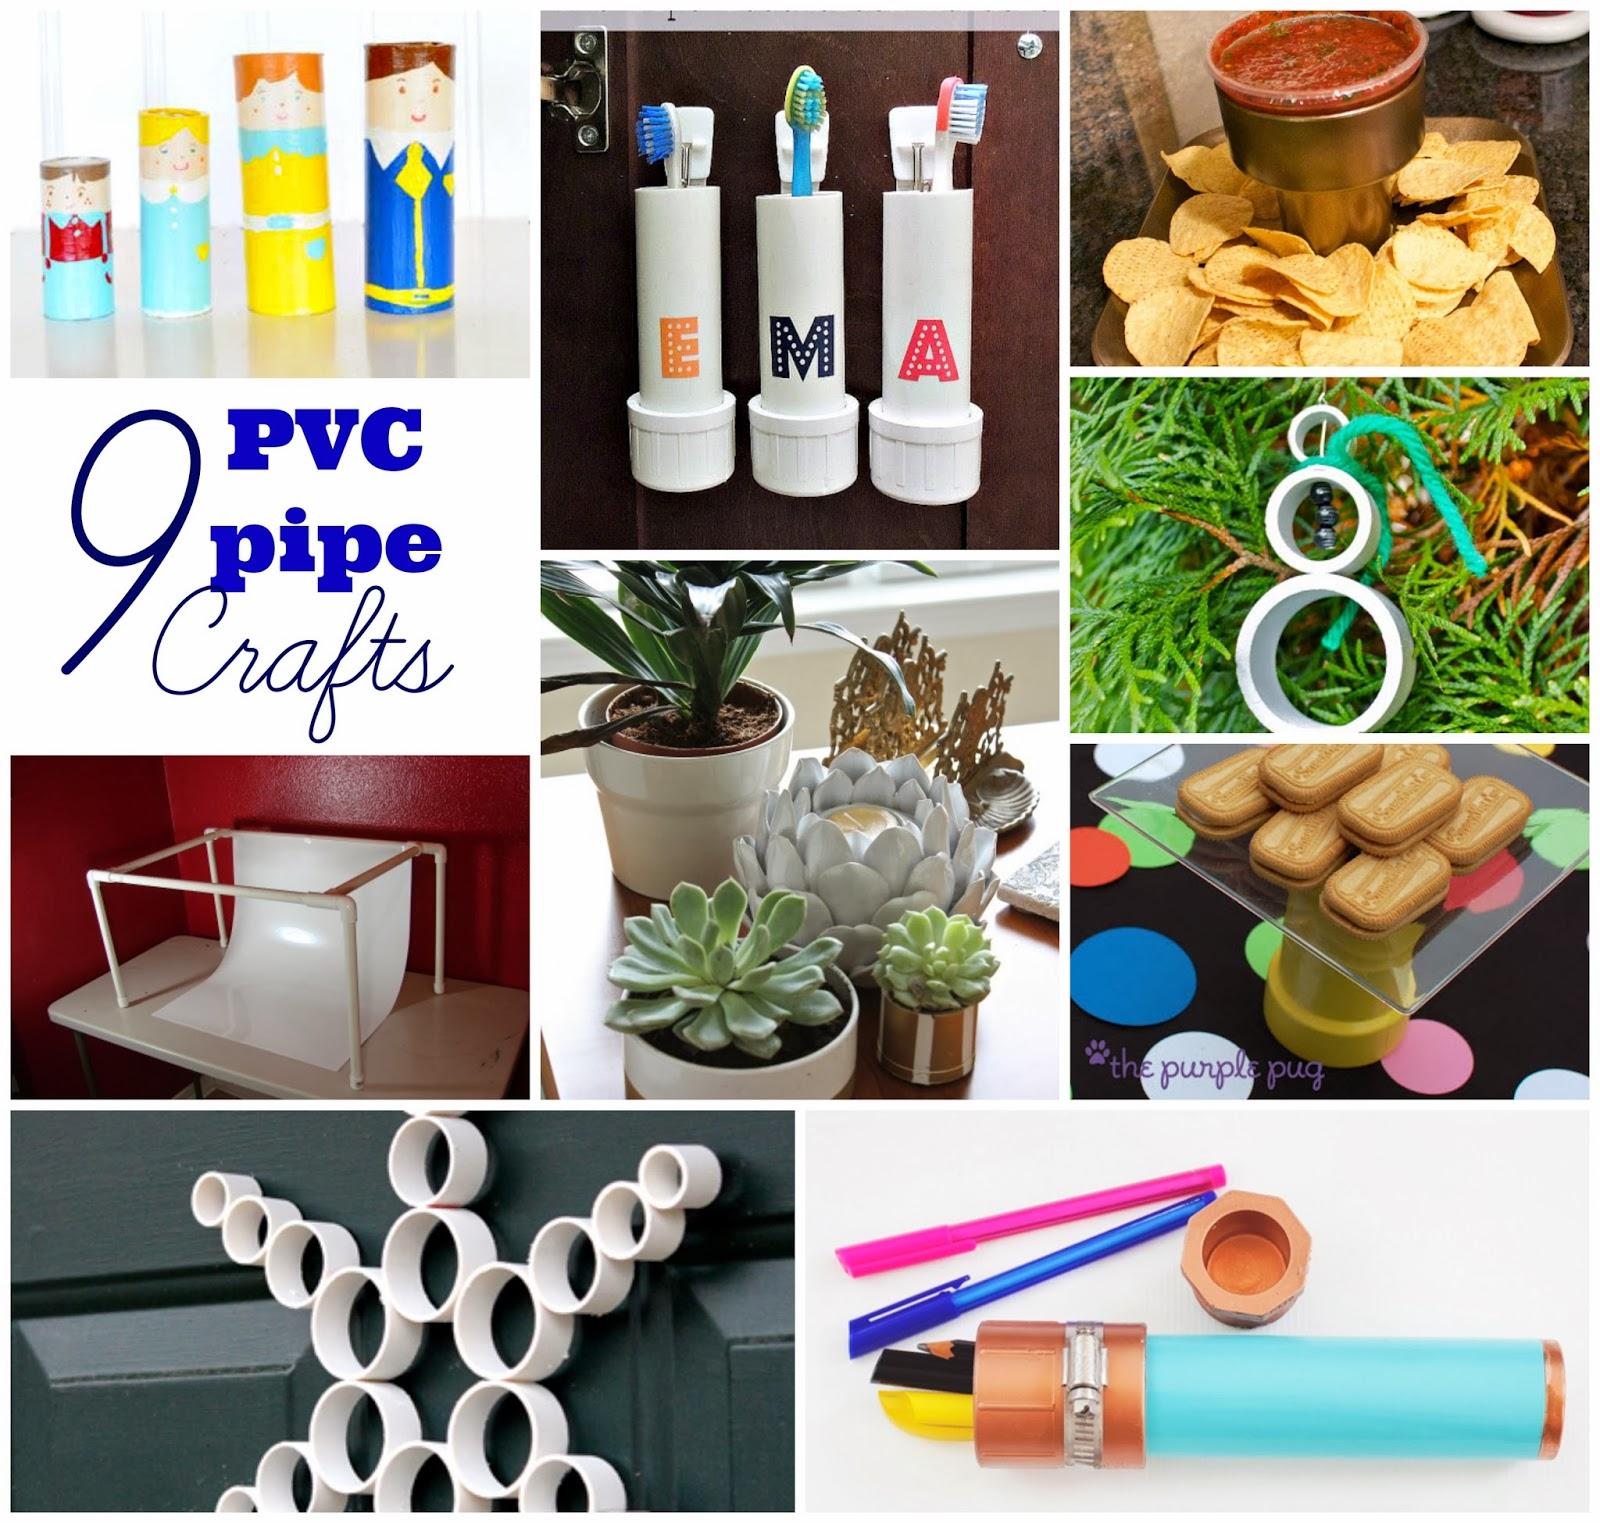 Sowdering about pvc pipe craft roundup for Pvc pipe crafts